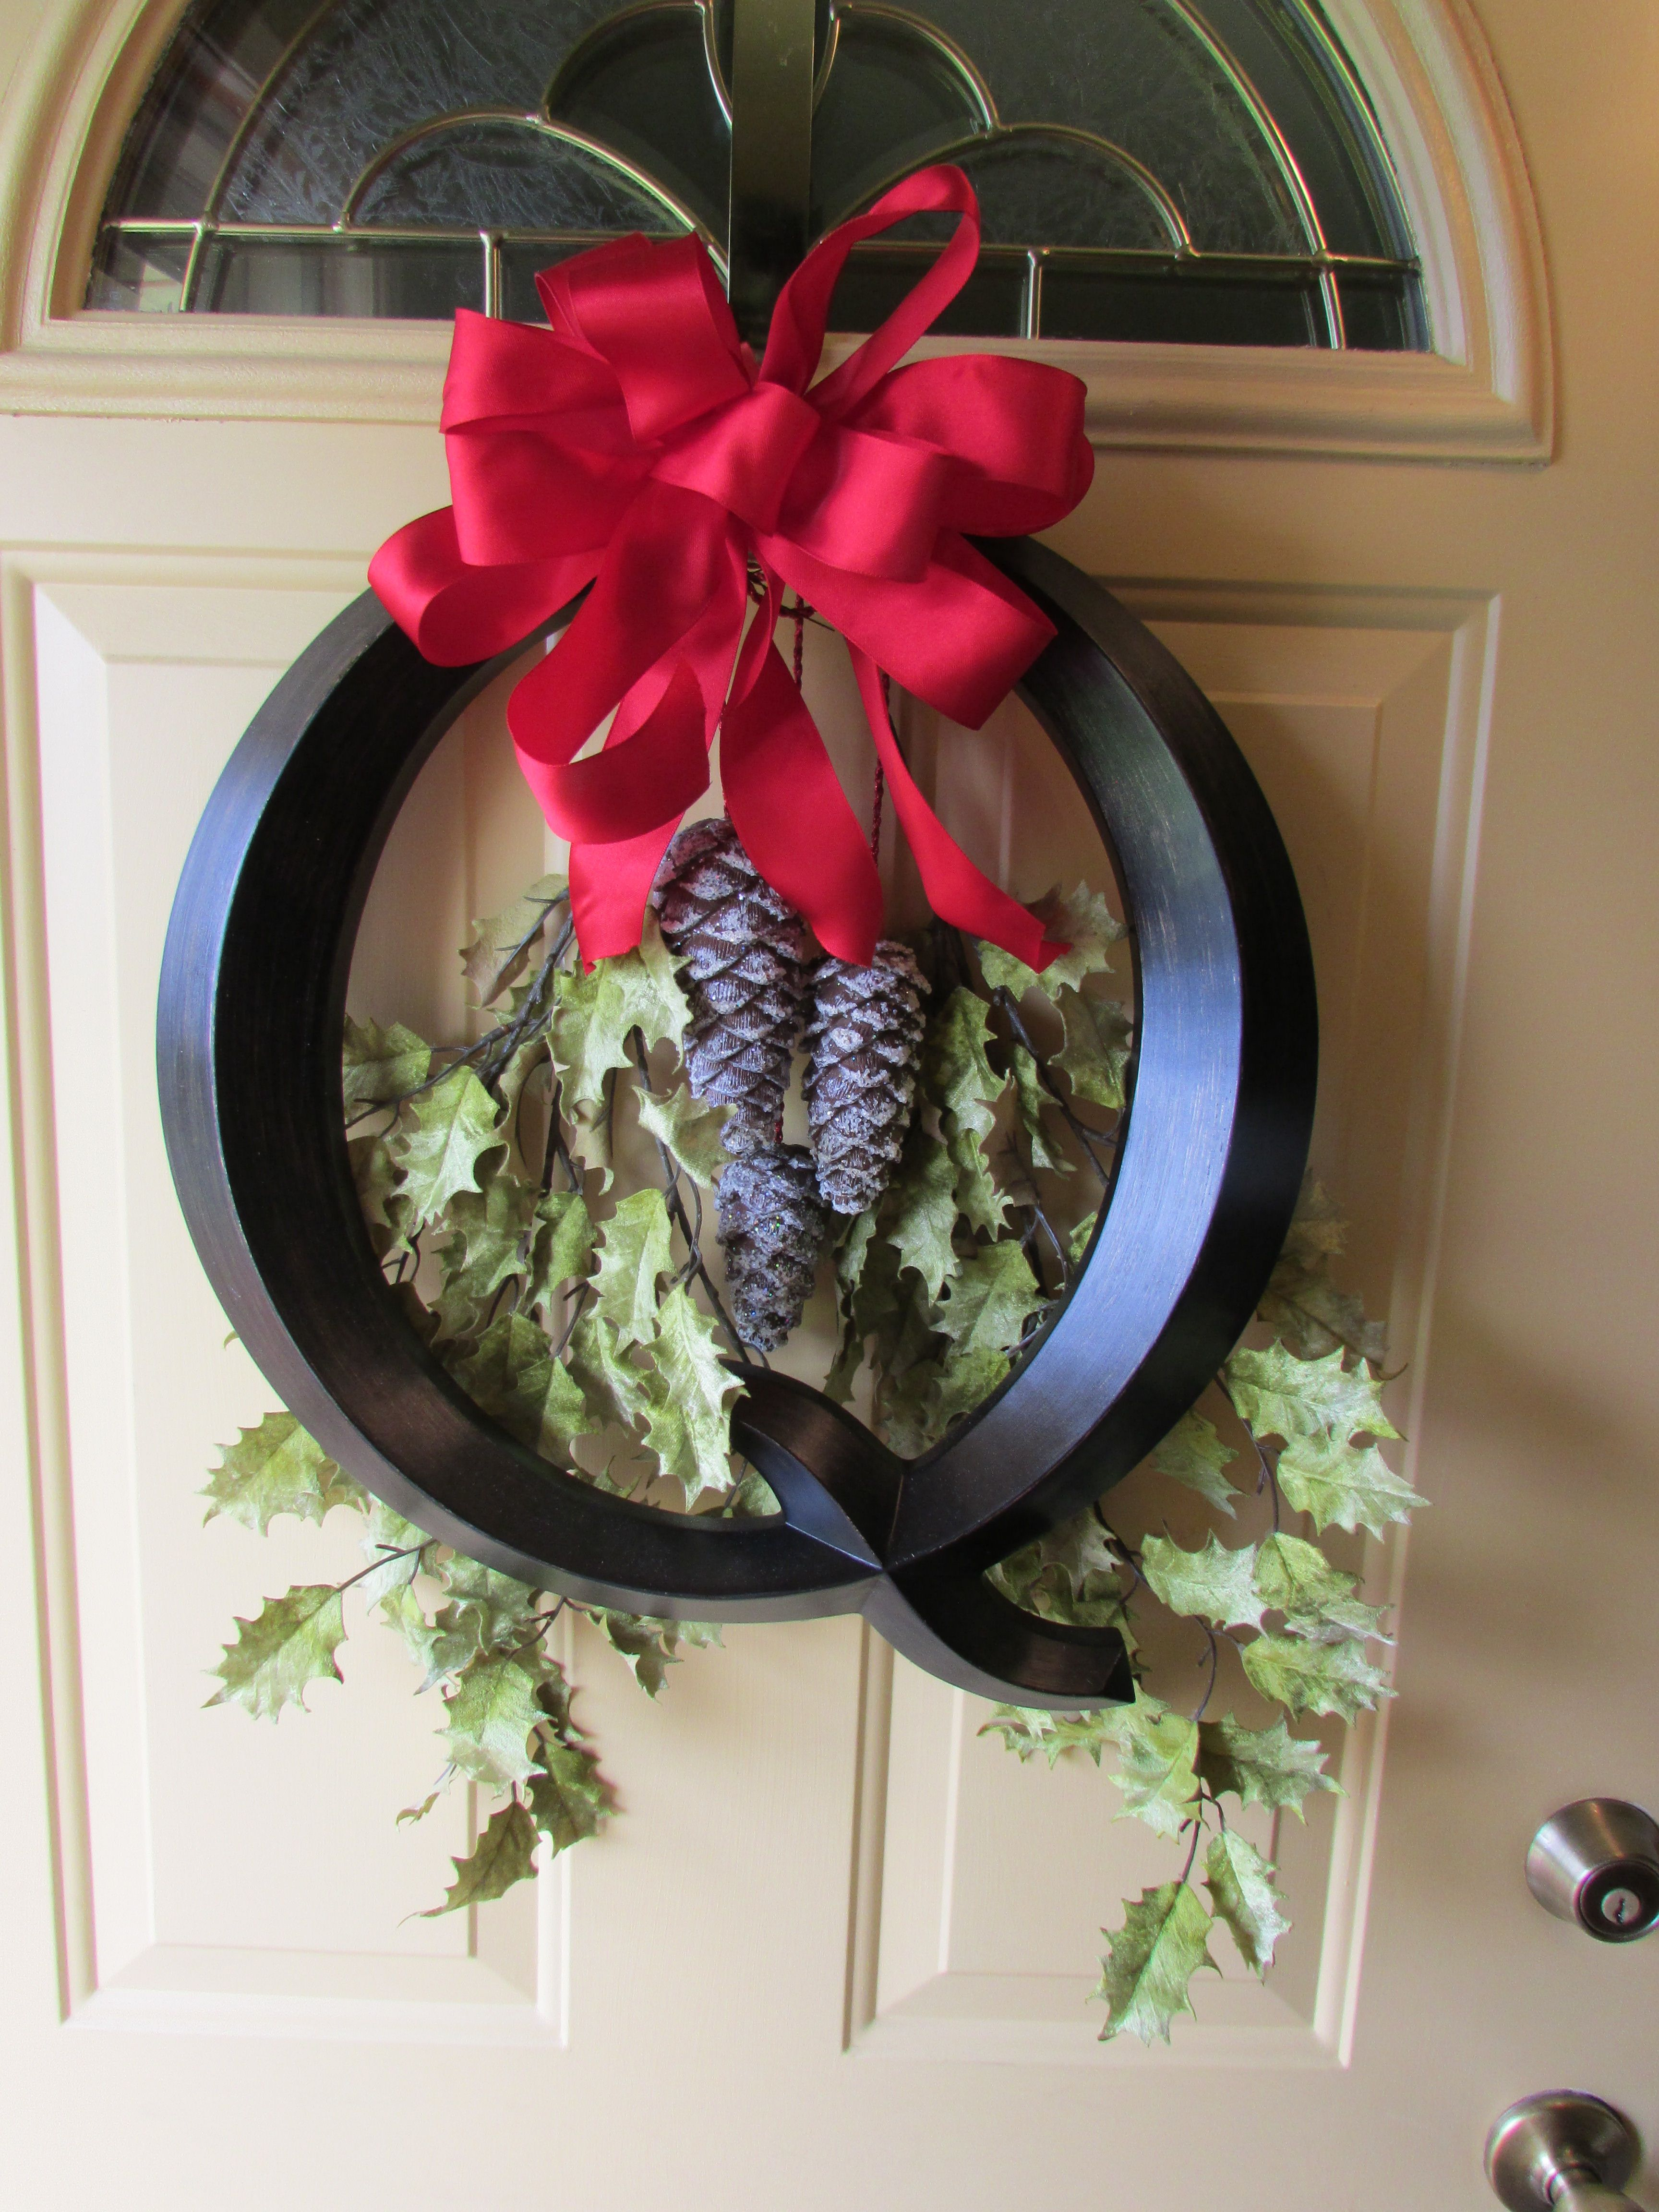 Our front door- our last name is Queen, so the initial works well for a wreath.